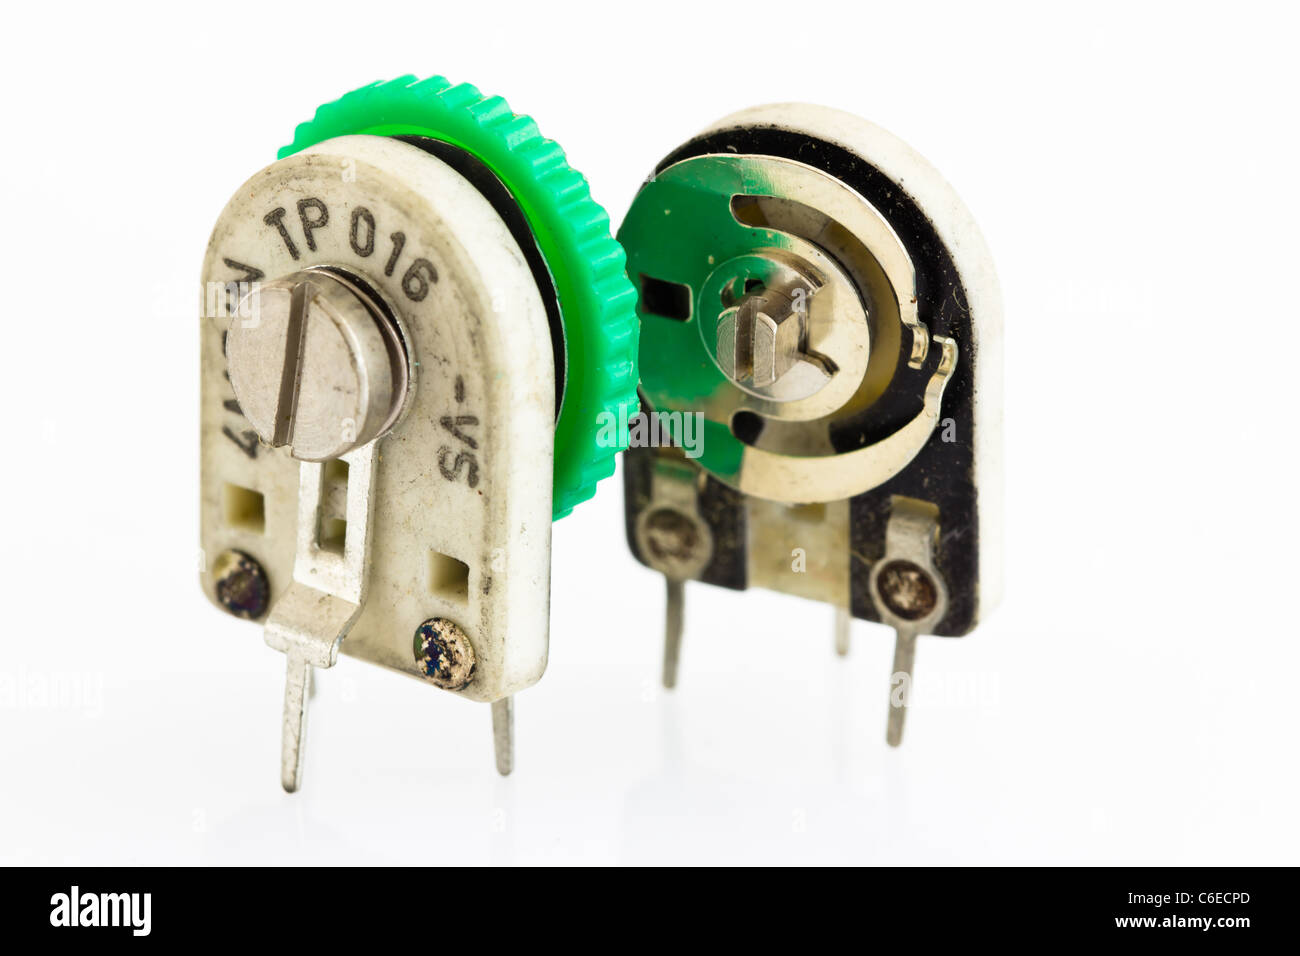 Variable Resistor Stock Photos Images Alamy Circuit Two Precision Resistors On Ceramic Substrate To The With A Plastic Nozzle For